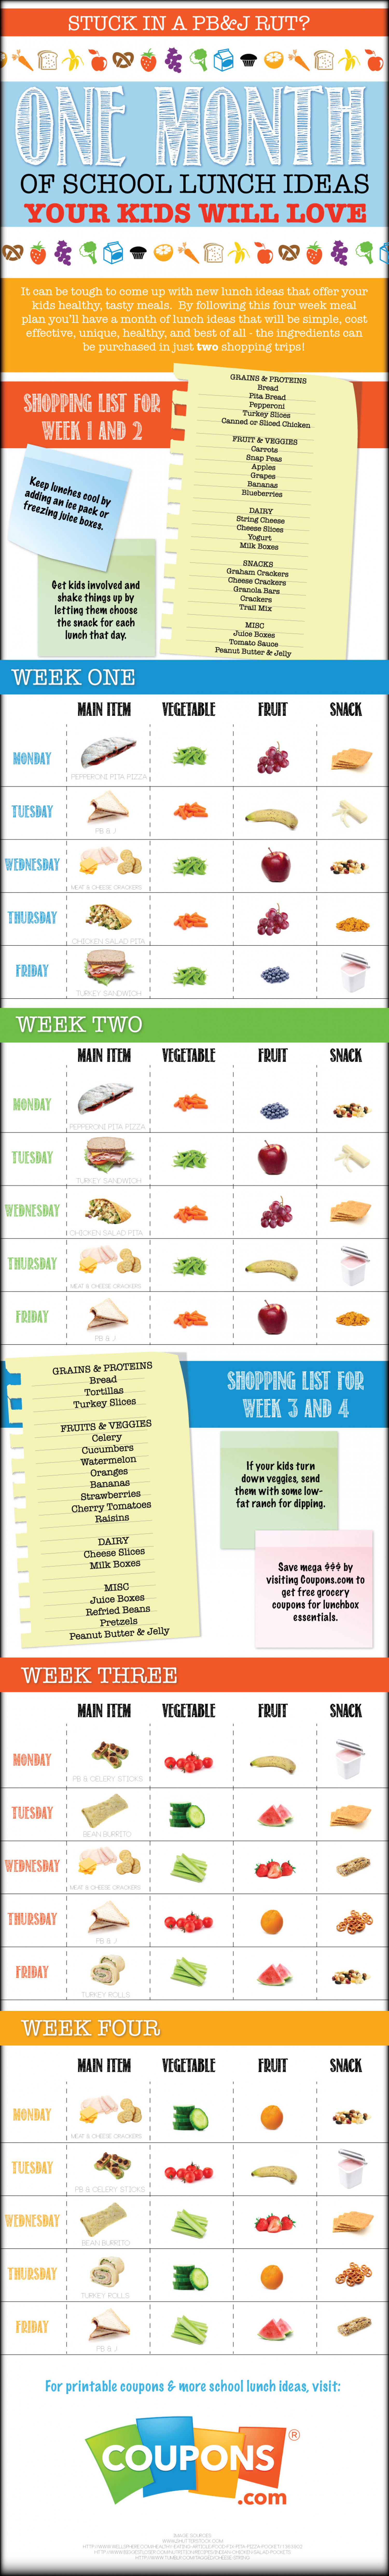 School Lunch Ideas Infographic